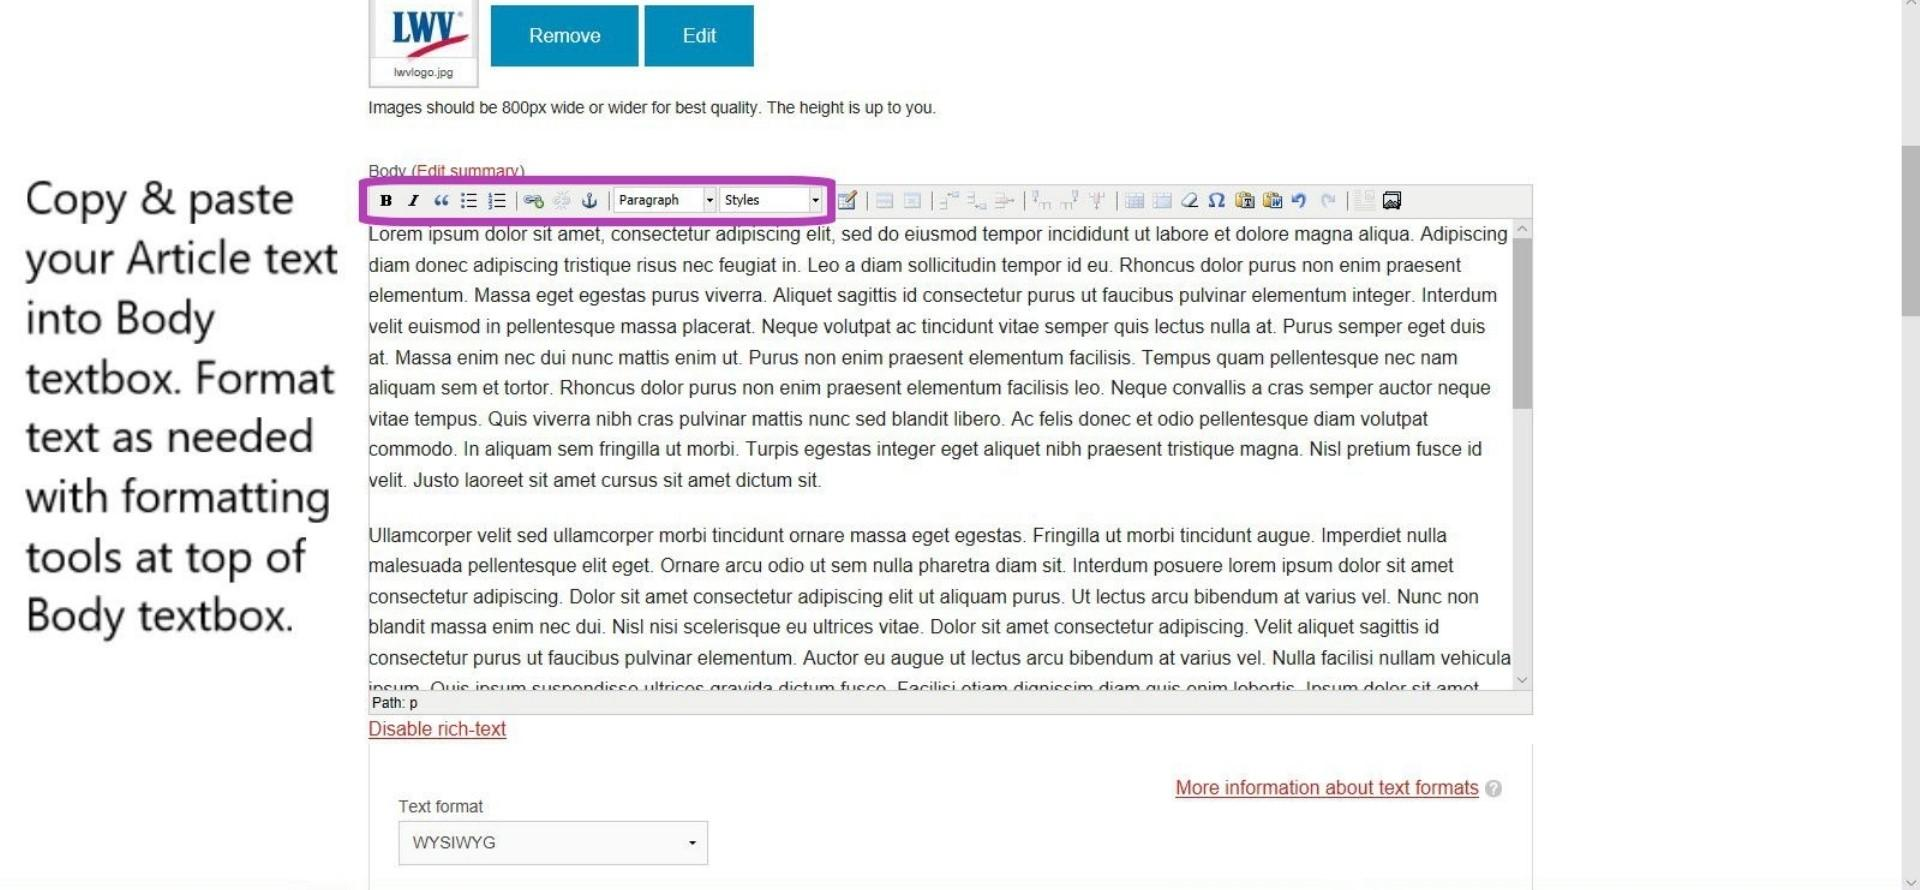 Create Article - Copy/paste article text into Body